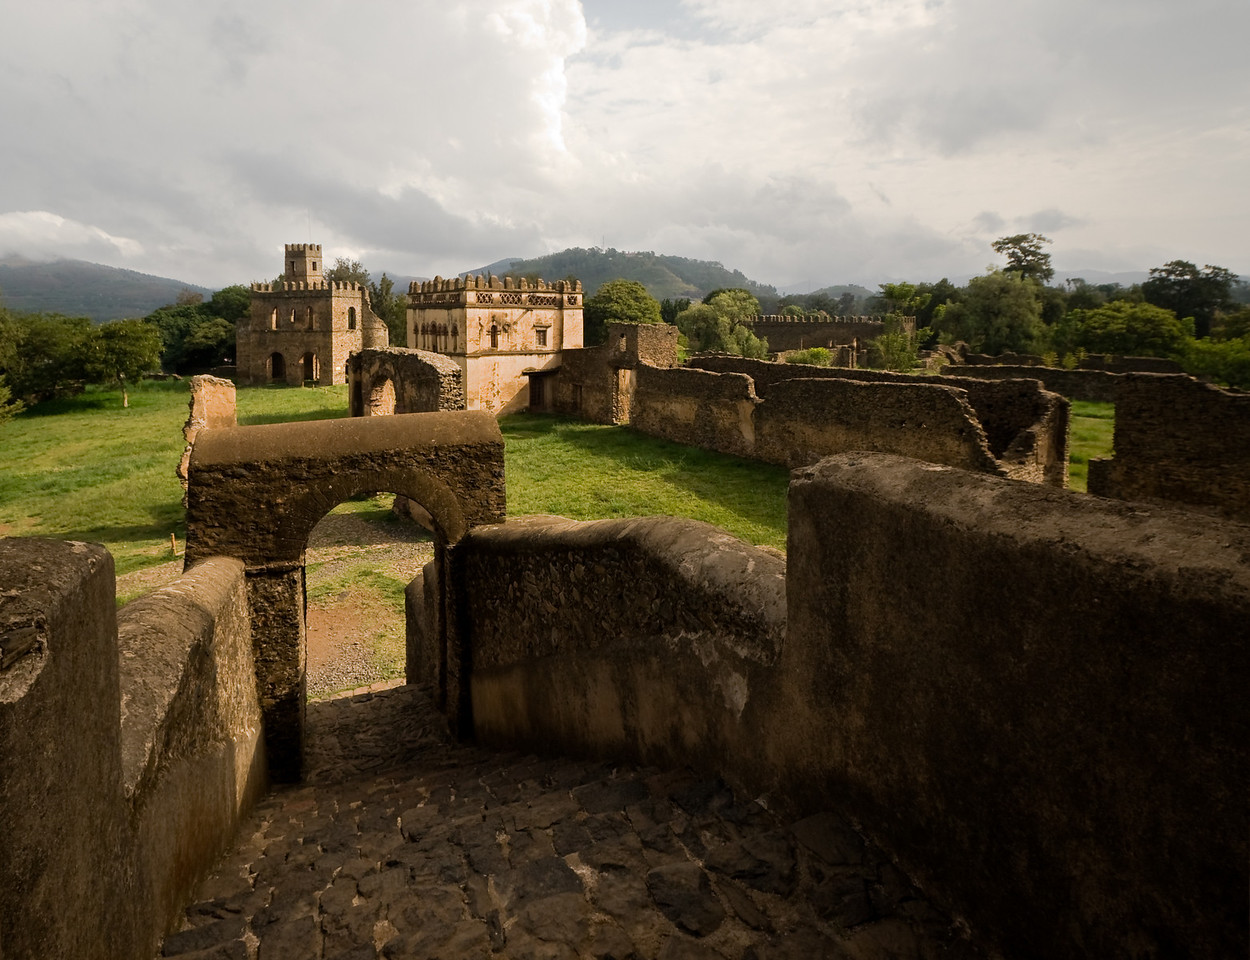 Castles in sub-Saharan Africa?  Yup, and Ethiopia's got one.<br /> <br /> Location: Gondar, Ethiopia<br /> <br /> Lens used: 10-22mm f3.5-4.5